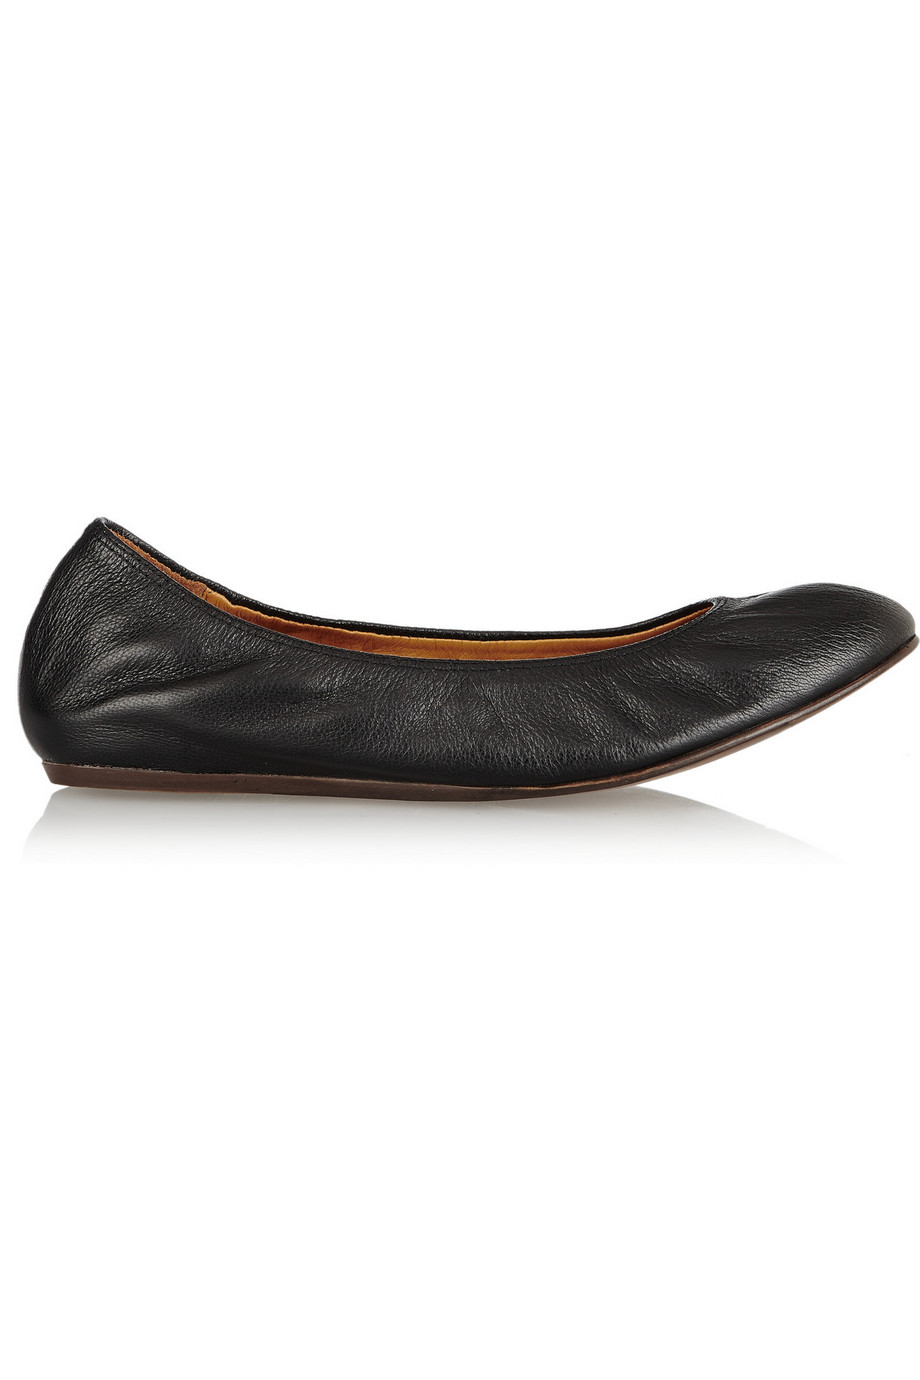 Lanvin Leather Ballet Flats, Black, Women's US Size: 7.5, Size: 38